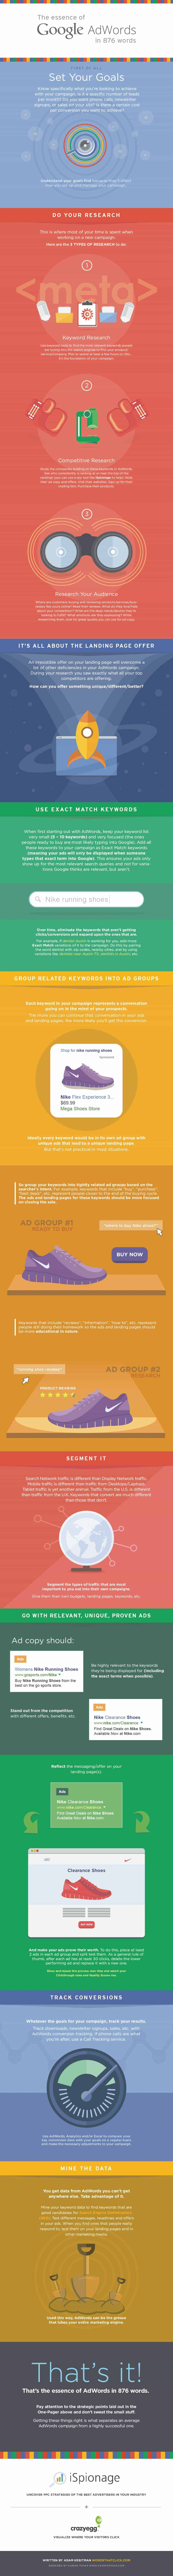 Top Google Ads Infographics